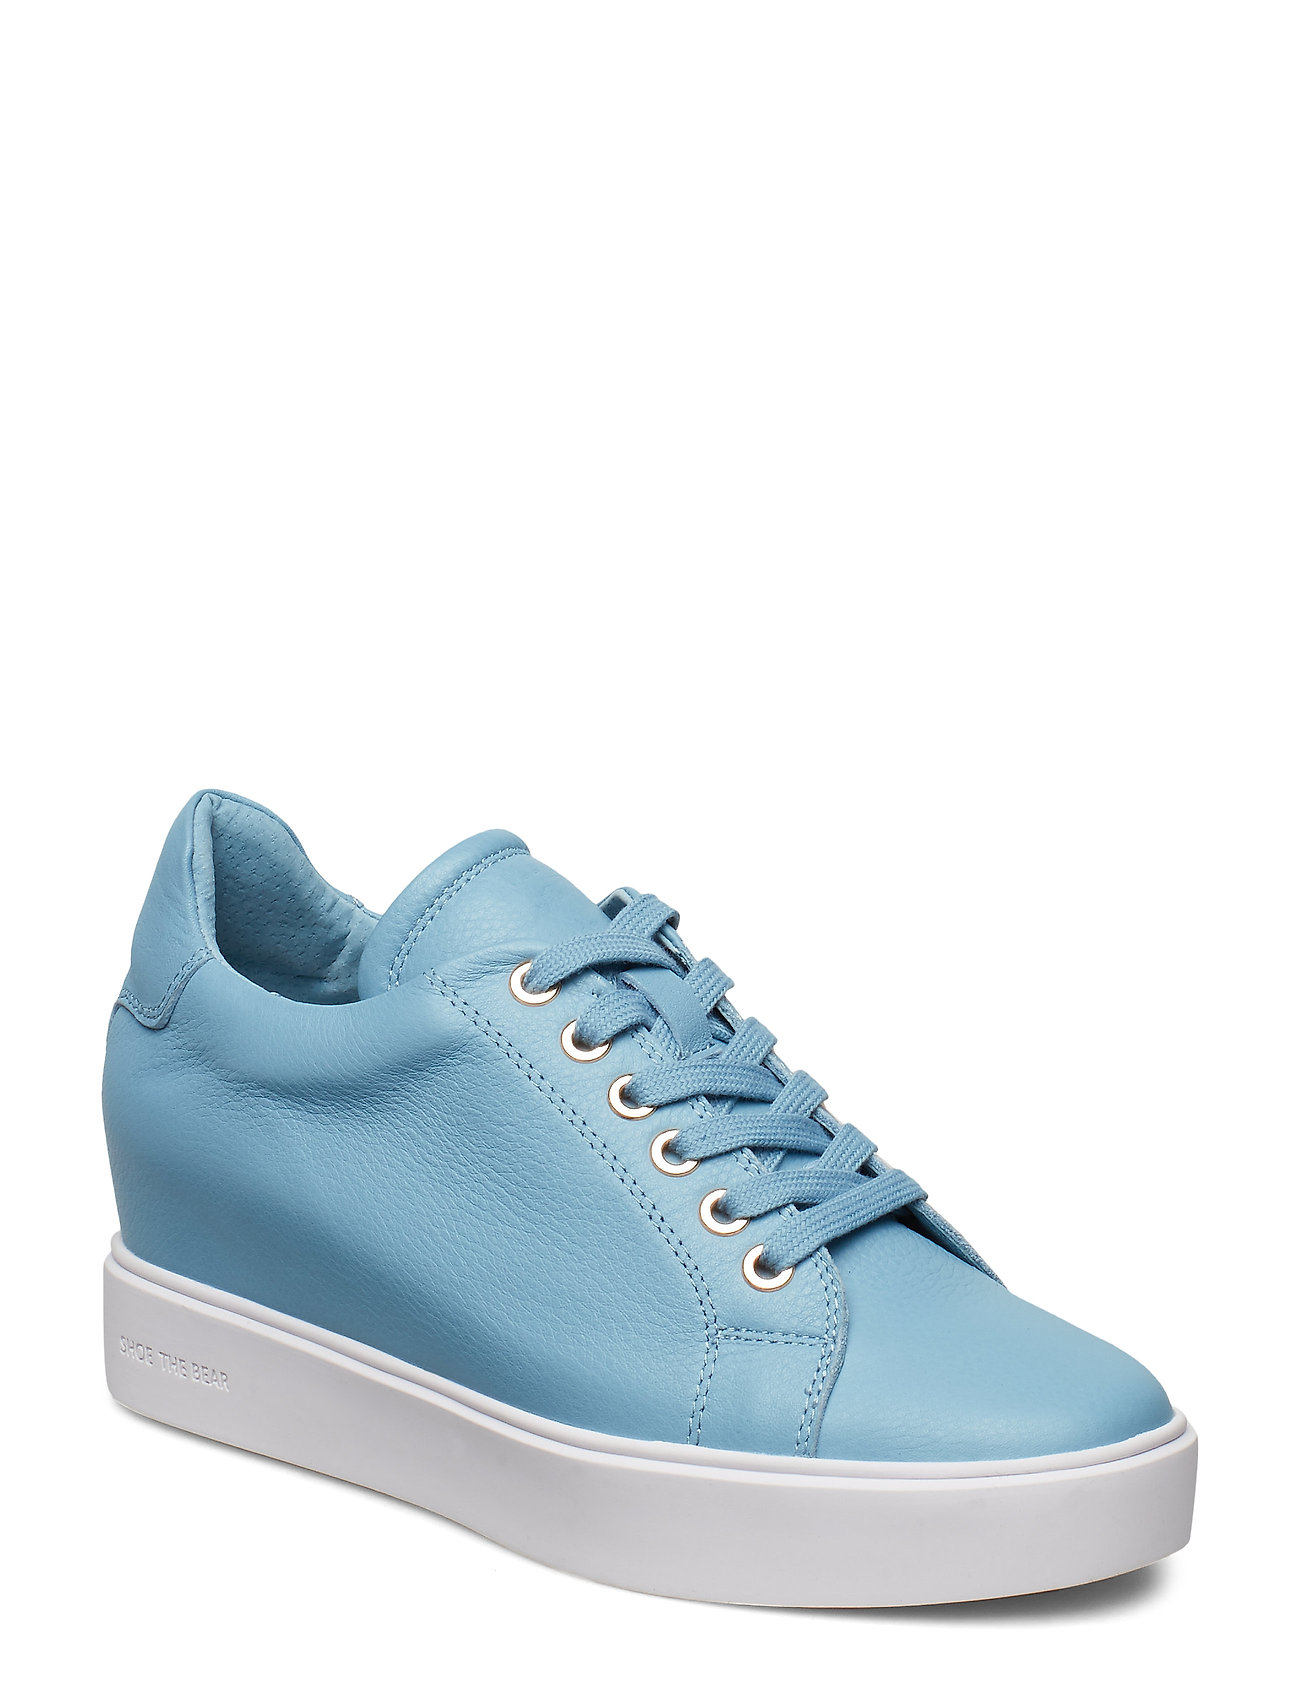 Image of Ava L Low-top Sneakers Blå Shoe The Bear (3406684831)